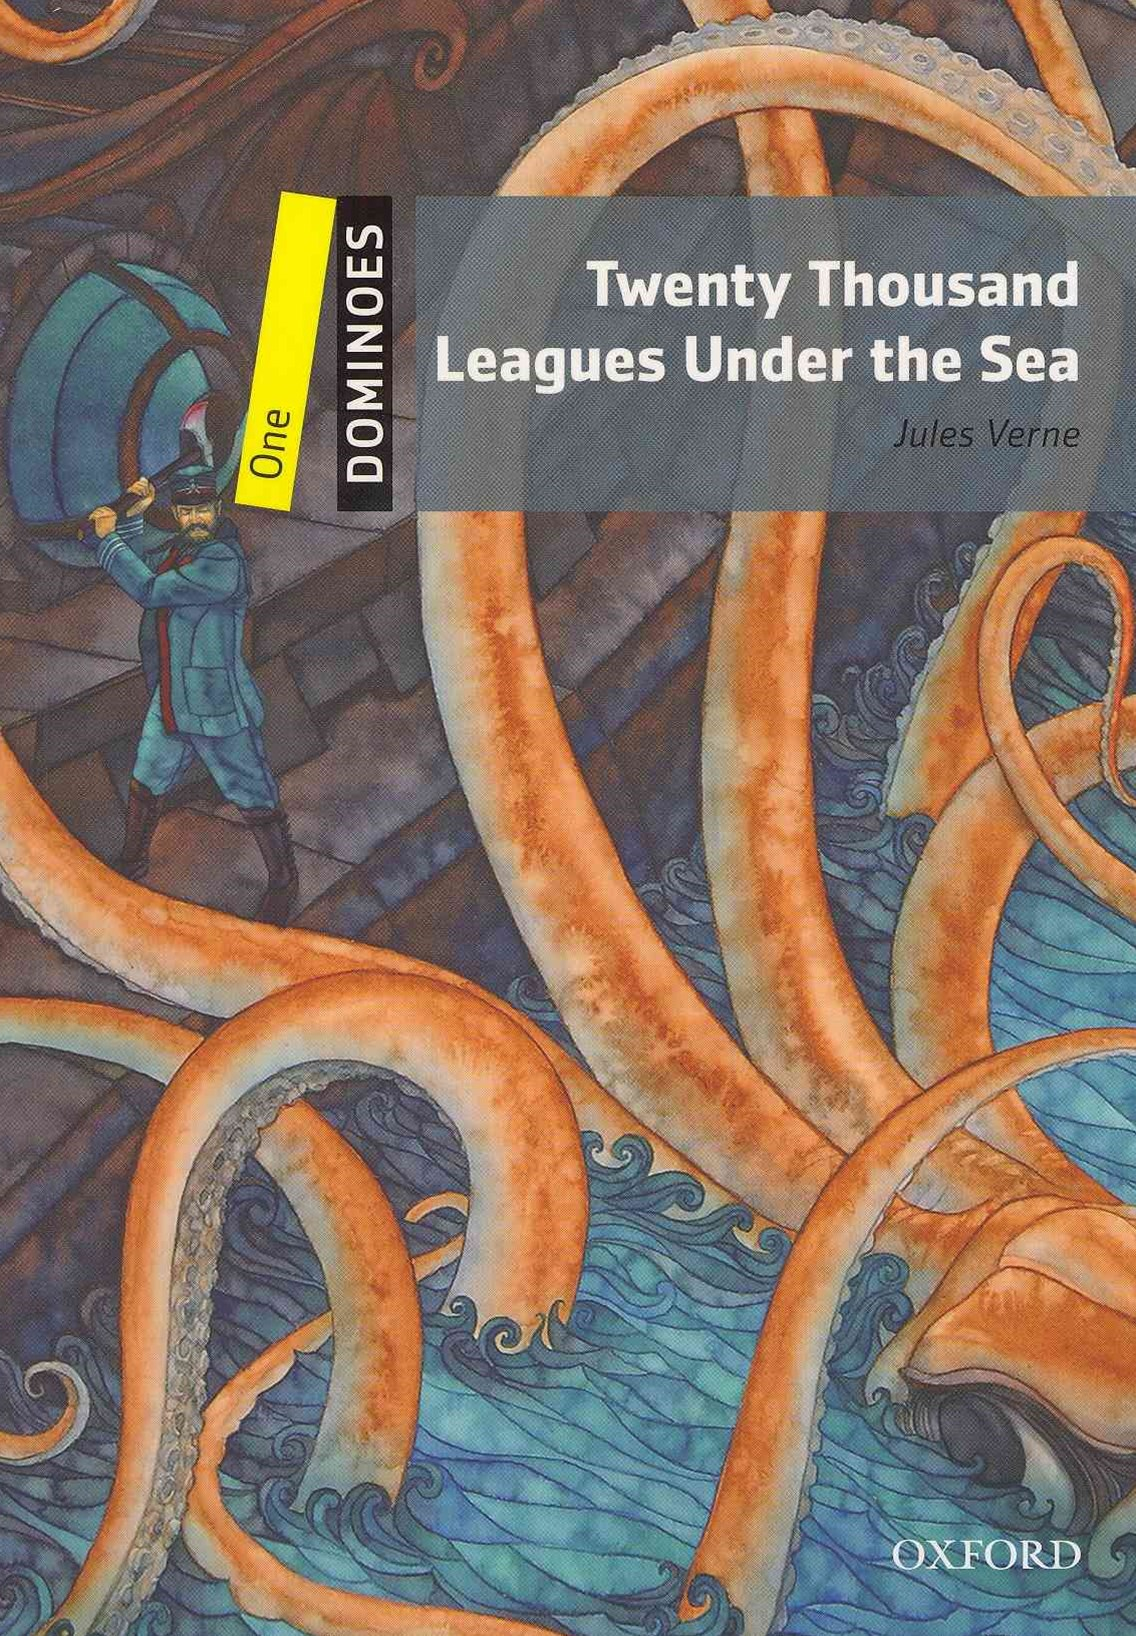 Dominoes One Twenty Thousand Leagues Under the Sea